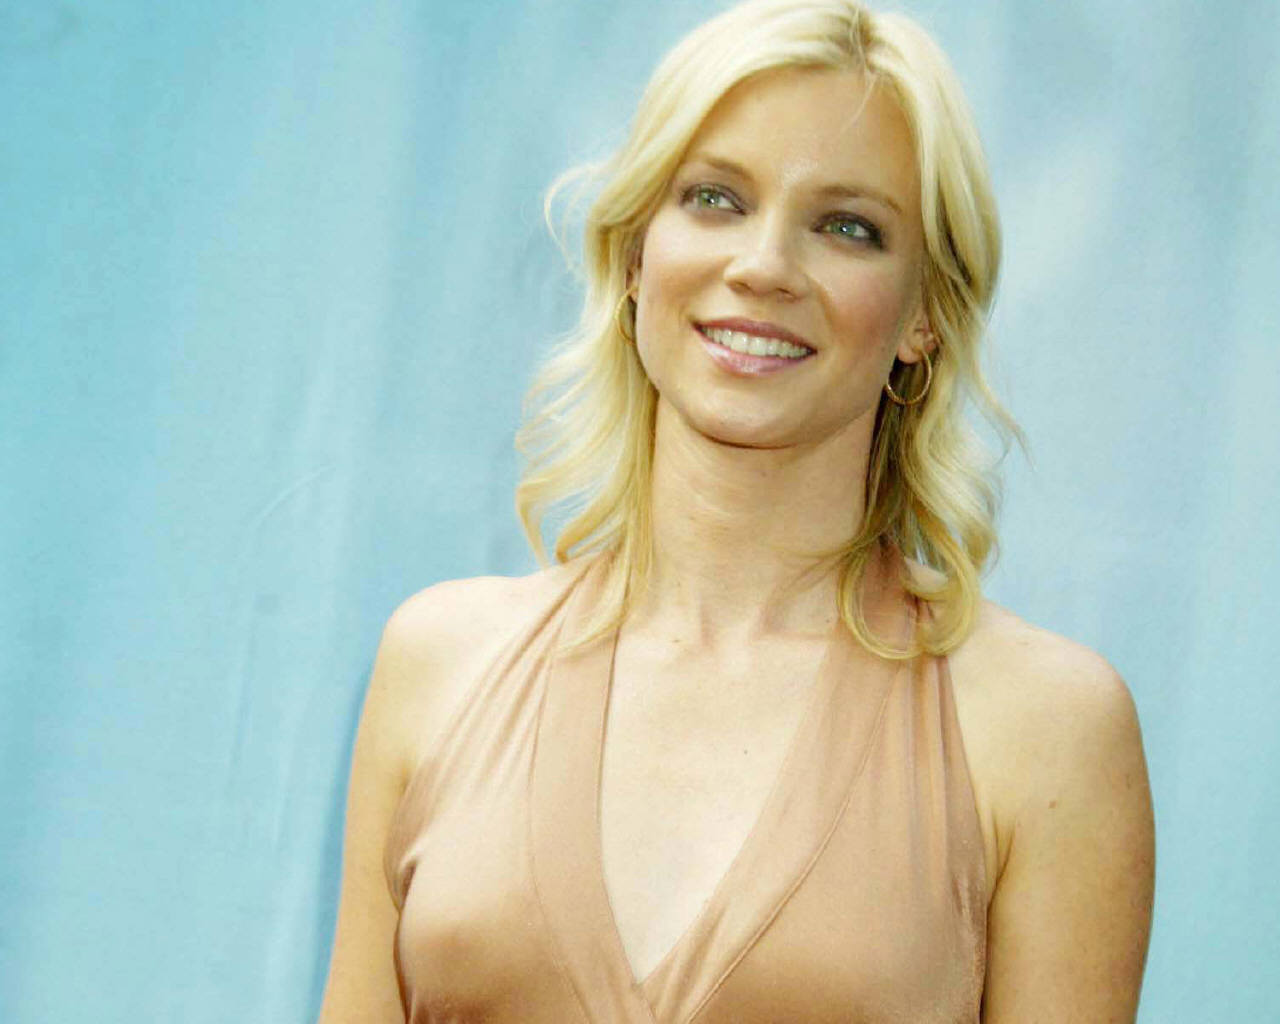 1280x1024 - Amy Smart Wallpapers 7